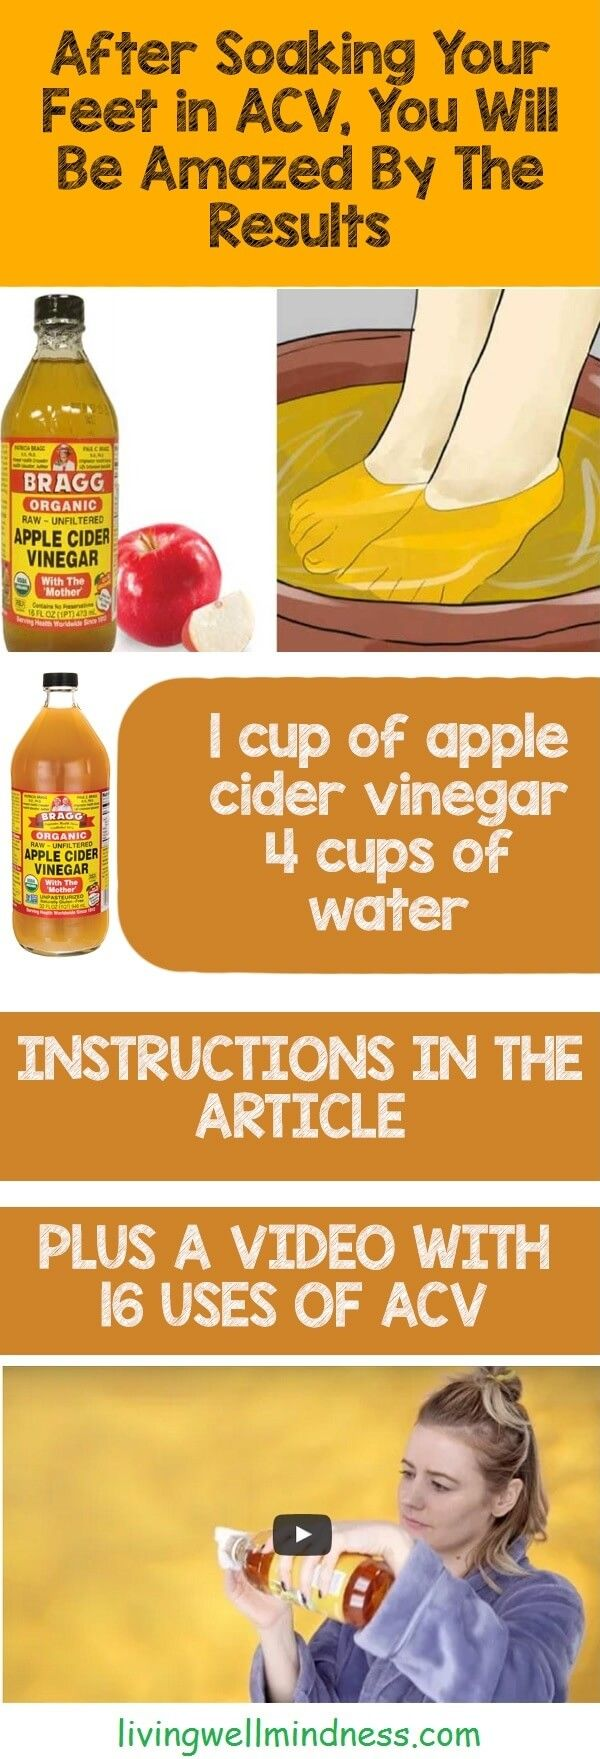 After Soaking Your Feet in Apple Cider Vinegar, You Will Be Amazed By The Results - Living Wellmindness